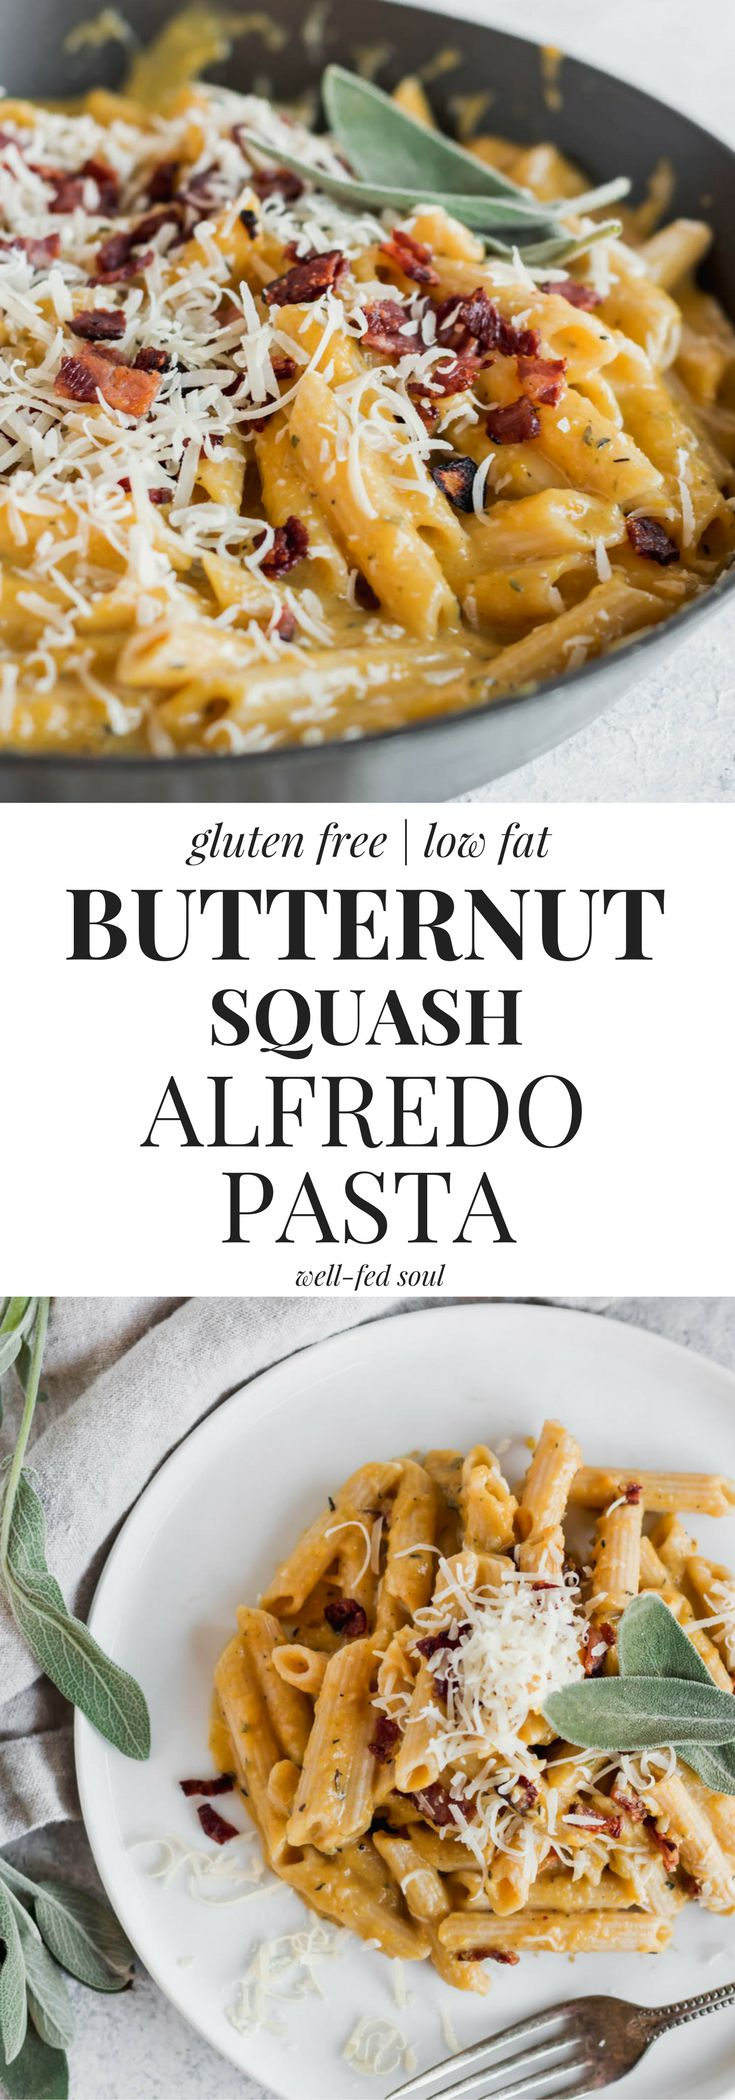 Healthy Butternut Squash Alfredo Pasta is ready in just 30 minutes! A lighter twist on the classic, this sauce is made from creamy, dreamy butternut squash for a serving of vegetables, too! #pasta #butternutsquash #comfortfood #wellfedsoul